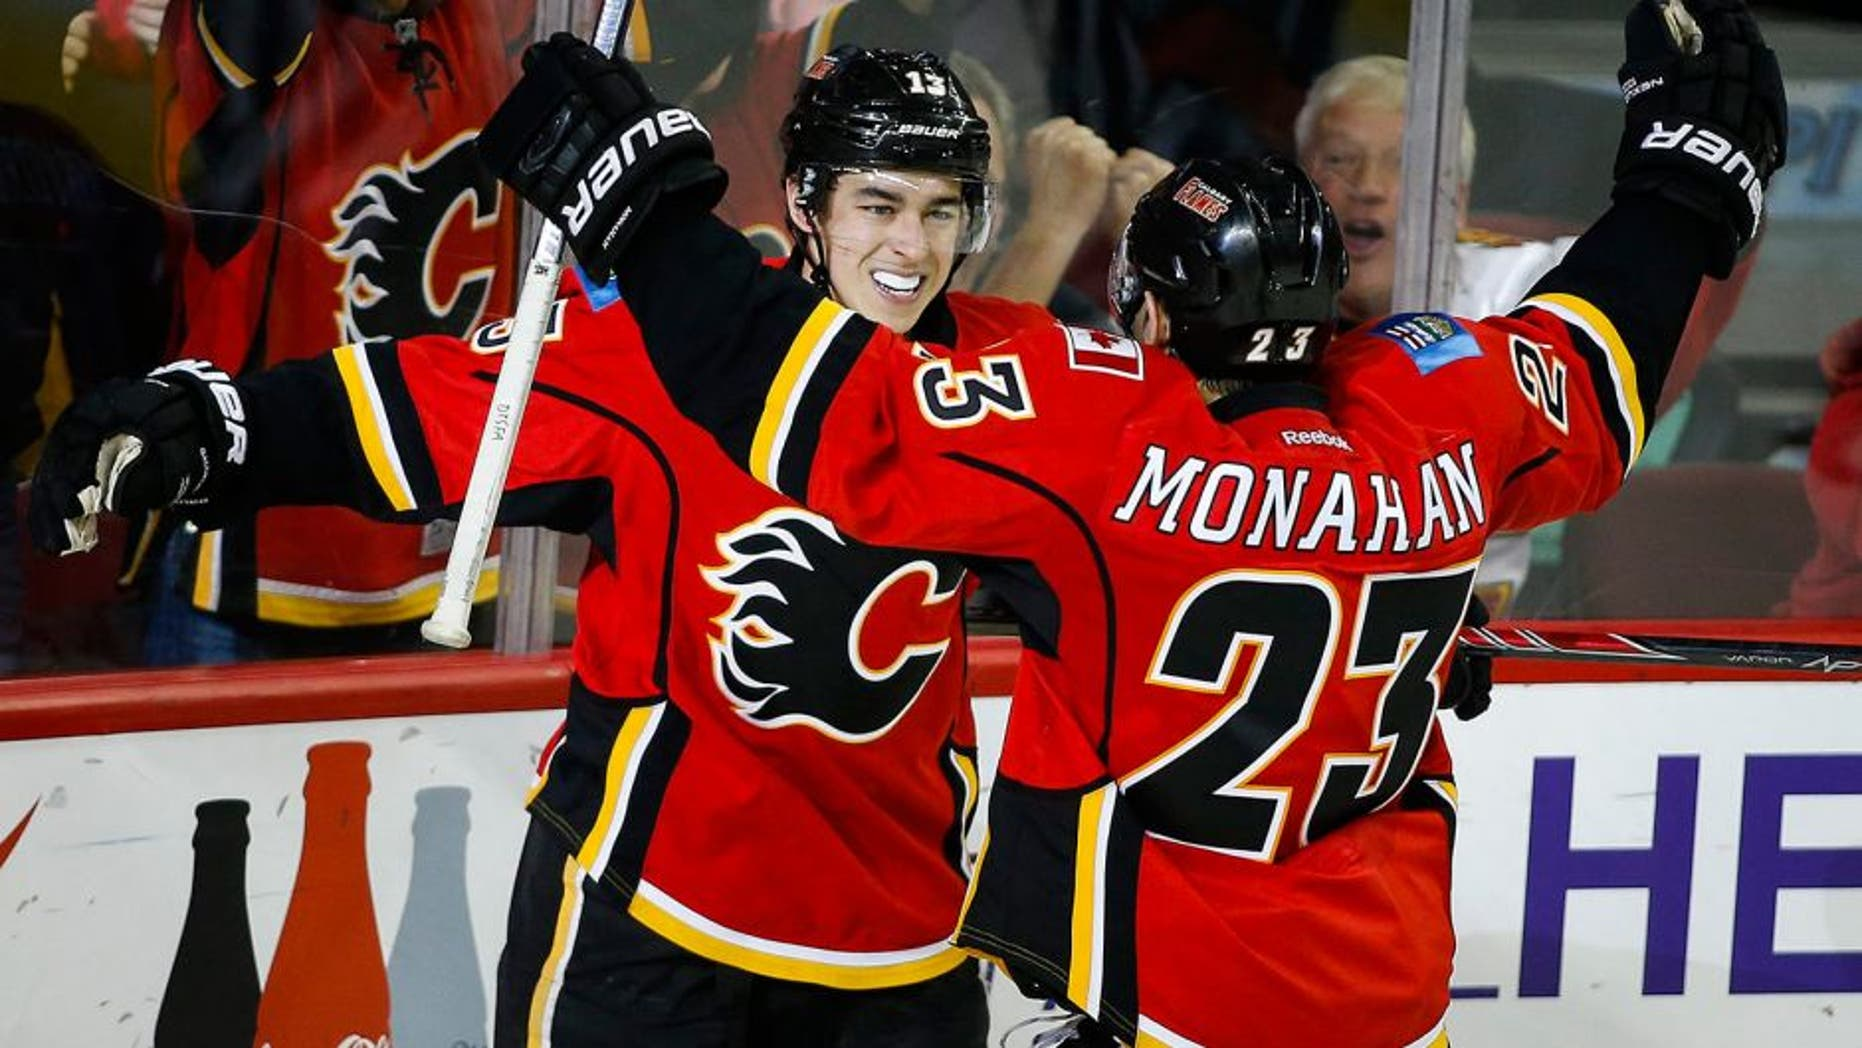 Calgary Flames' Johnny Gaudreau, left, celebrates his game-winning goal with teammate Sean Monahan during third period NHL hockey action against the Buffalo Sabres, in Calgary, on Thursday, Dec. 10, 2015. (Jeff McIntosh/The Canadian Press via AP) MANDATORY CREDIT